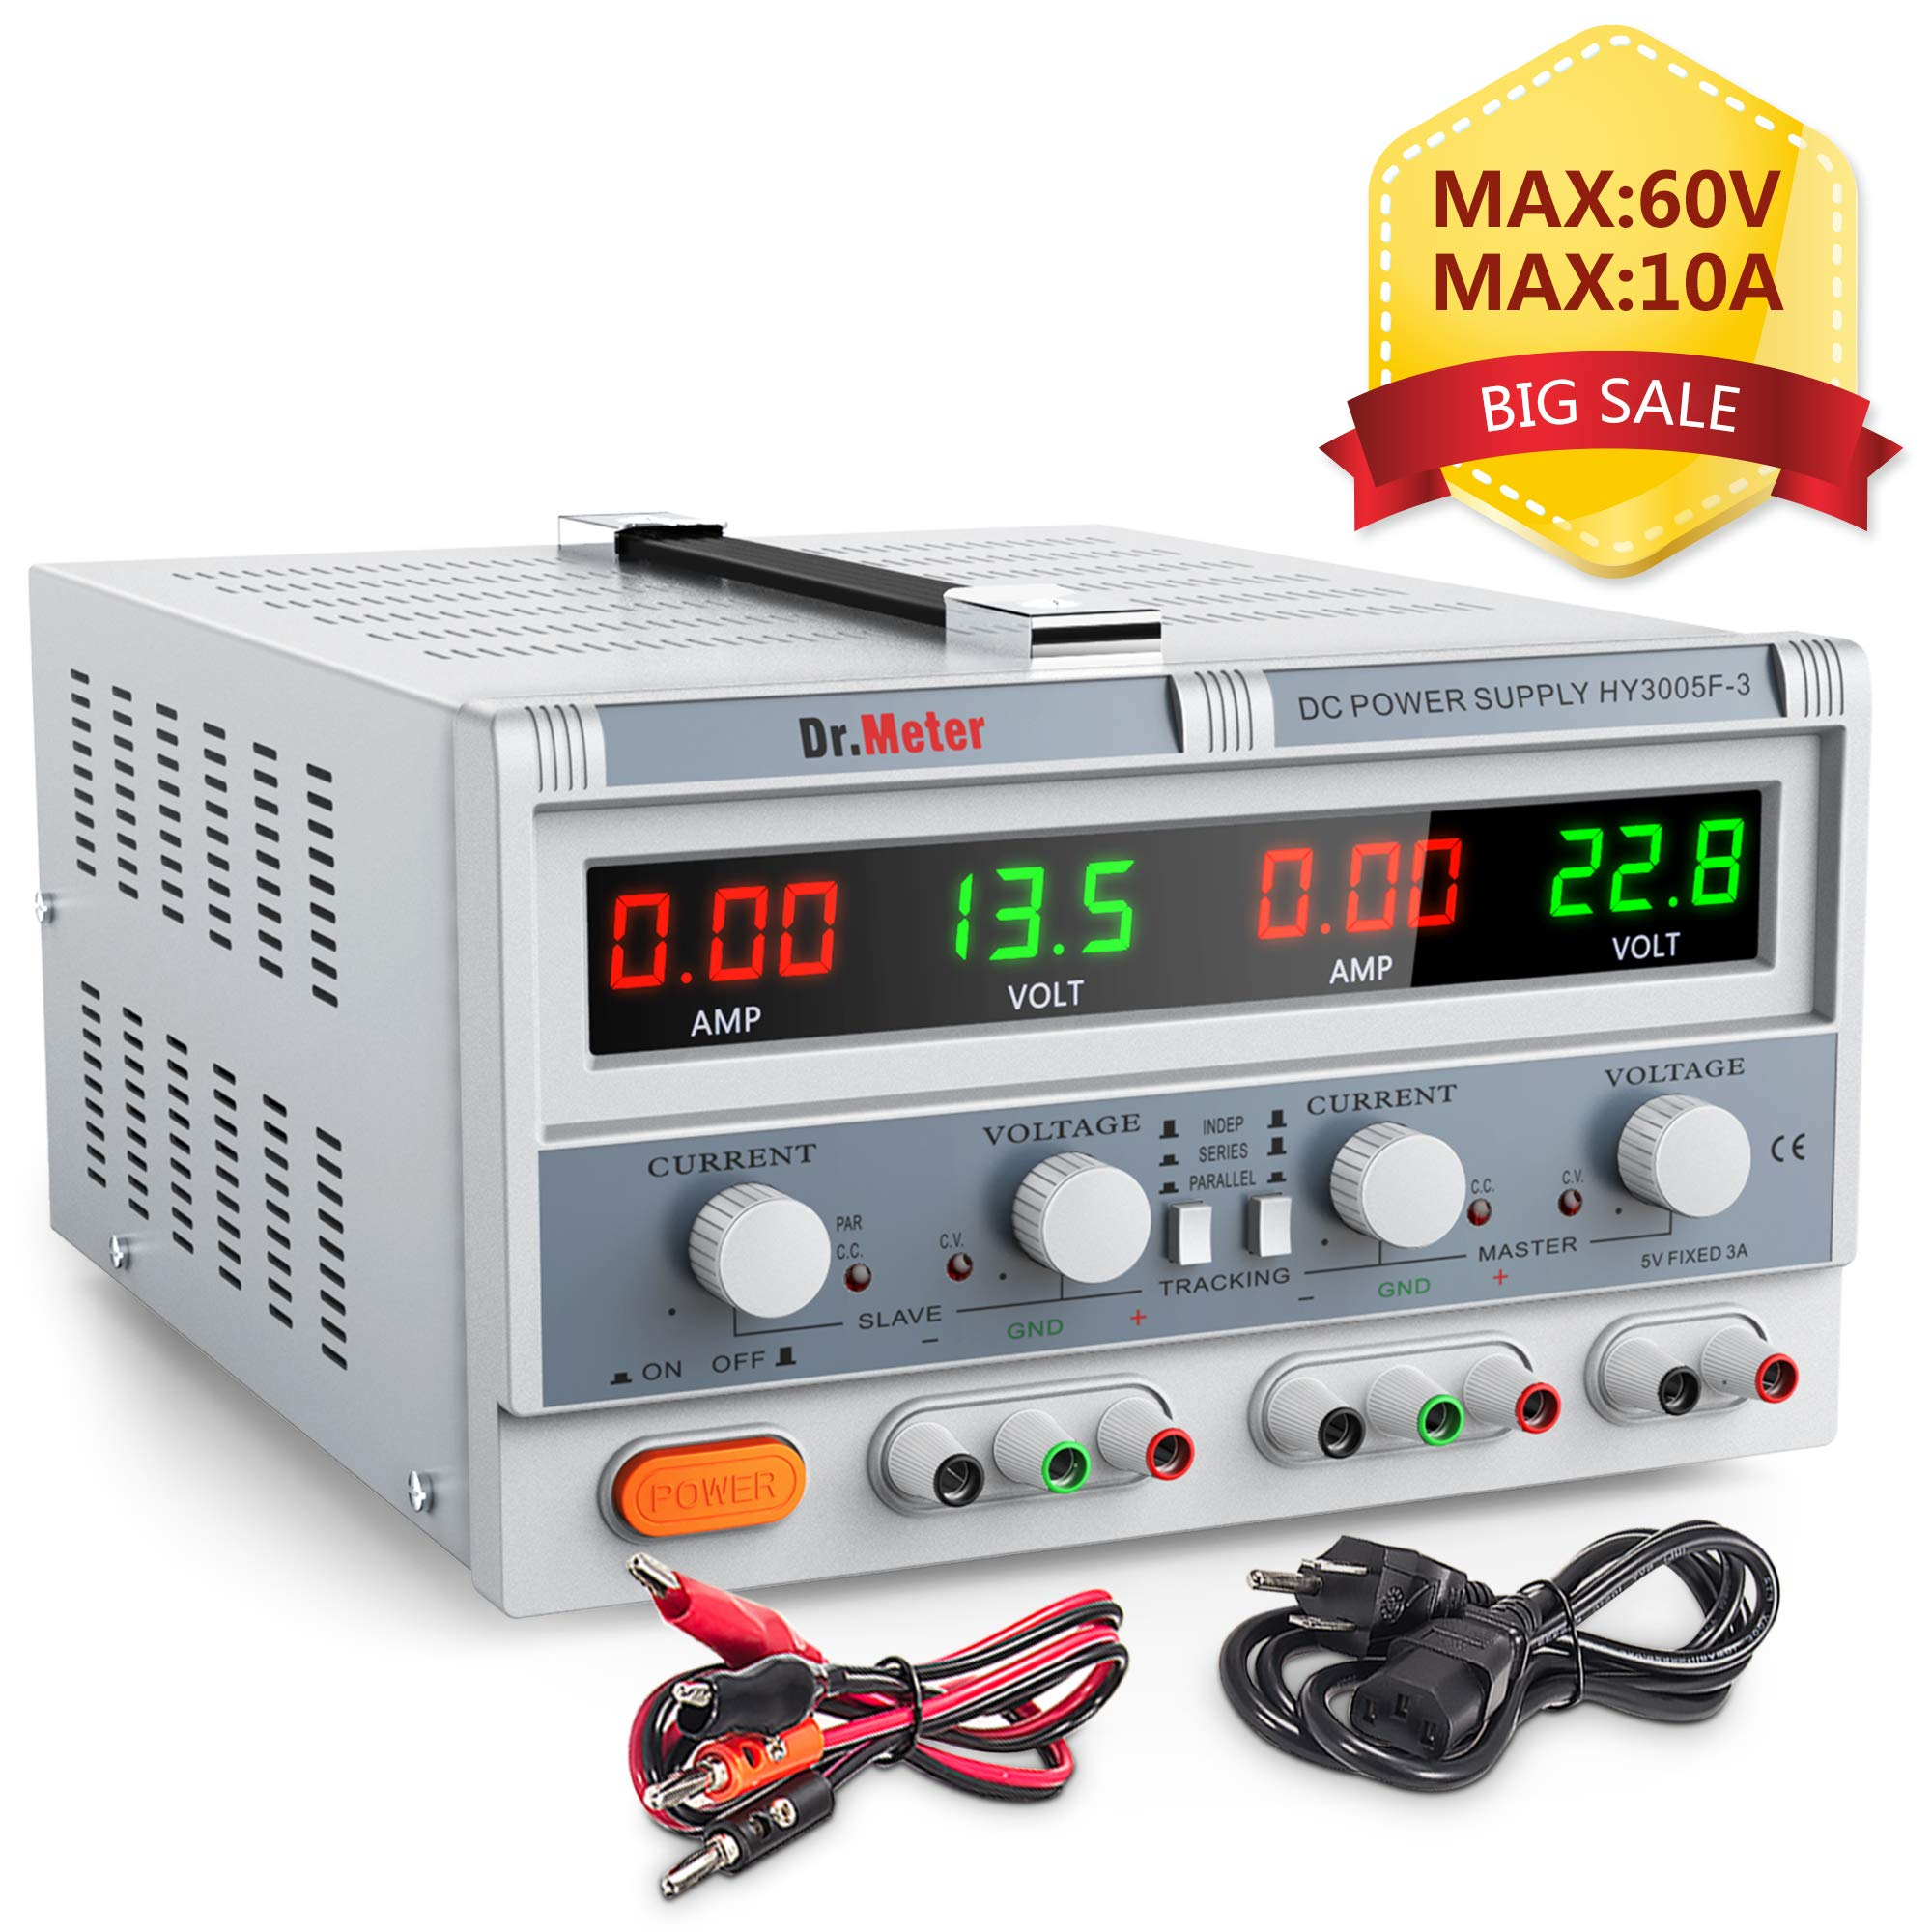 Dr.meter Triple Linear Variable DC Power Supply, Adjustable 30V/5A, Series and Parallel Mode, Input Voltage 104-127V, with Alligator Leads to Banana and AC Power Cable (HY3005F-3) by Dr.meter